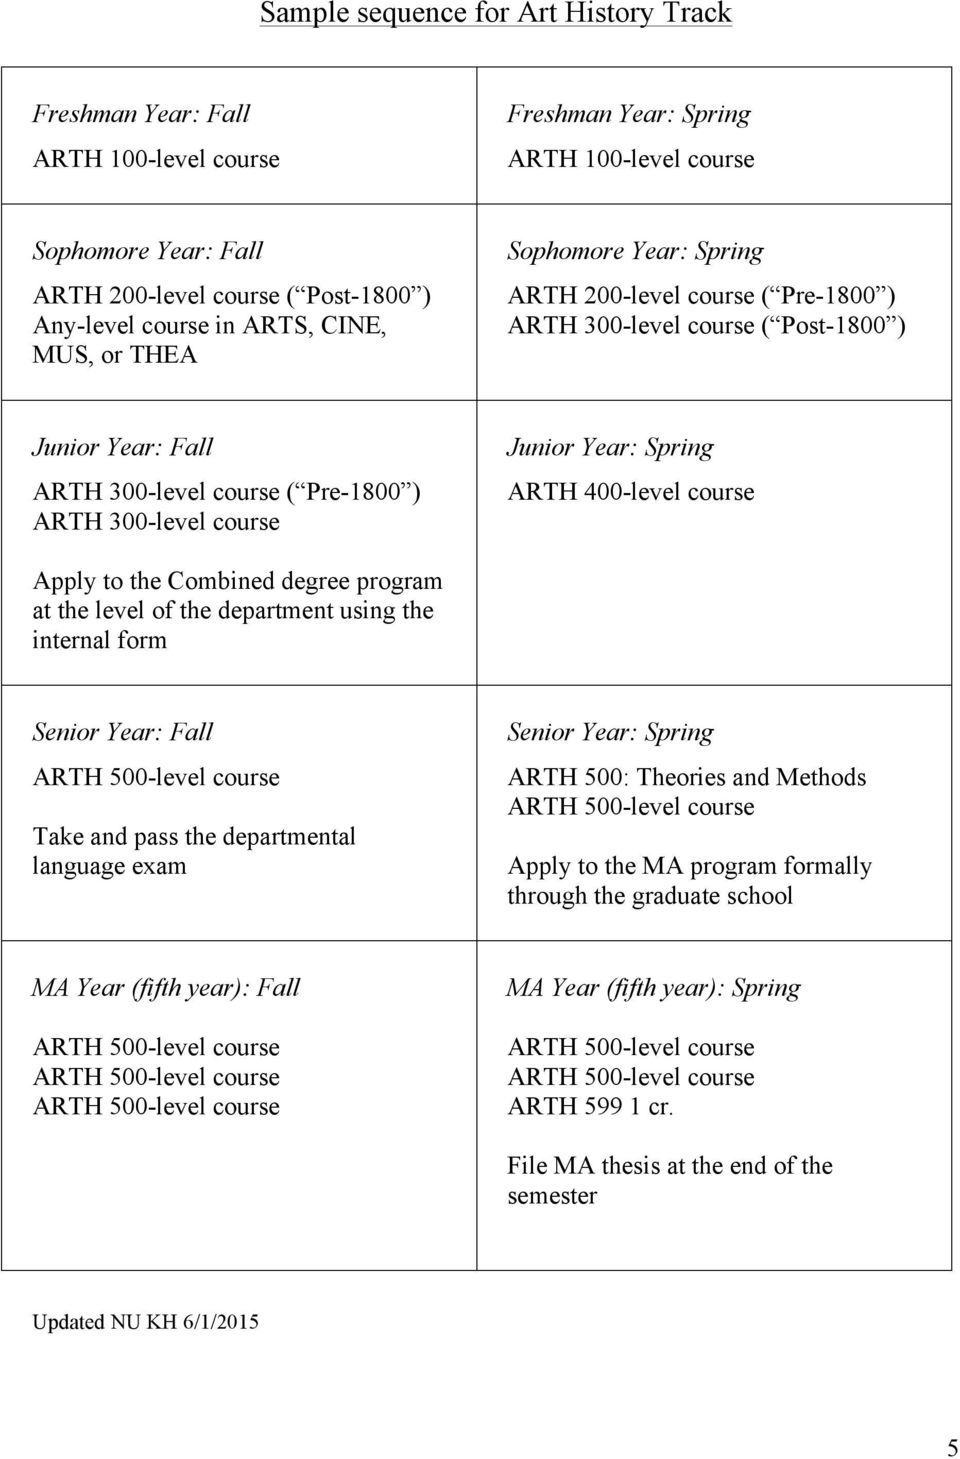 Junior Year: Spring ARTH 400-level course Apply to the Combined degree program at the level of the department using the internal form Senior Year: Fall Take and pass the departmental language exam